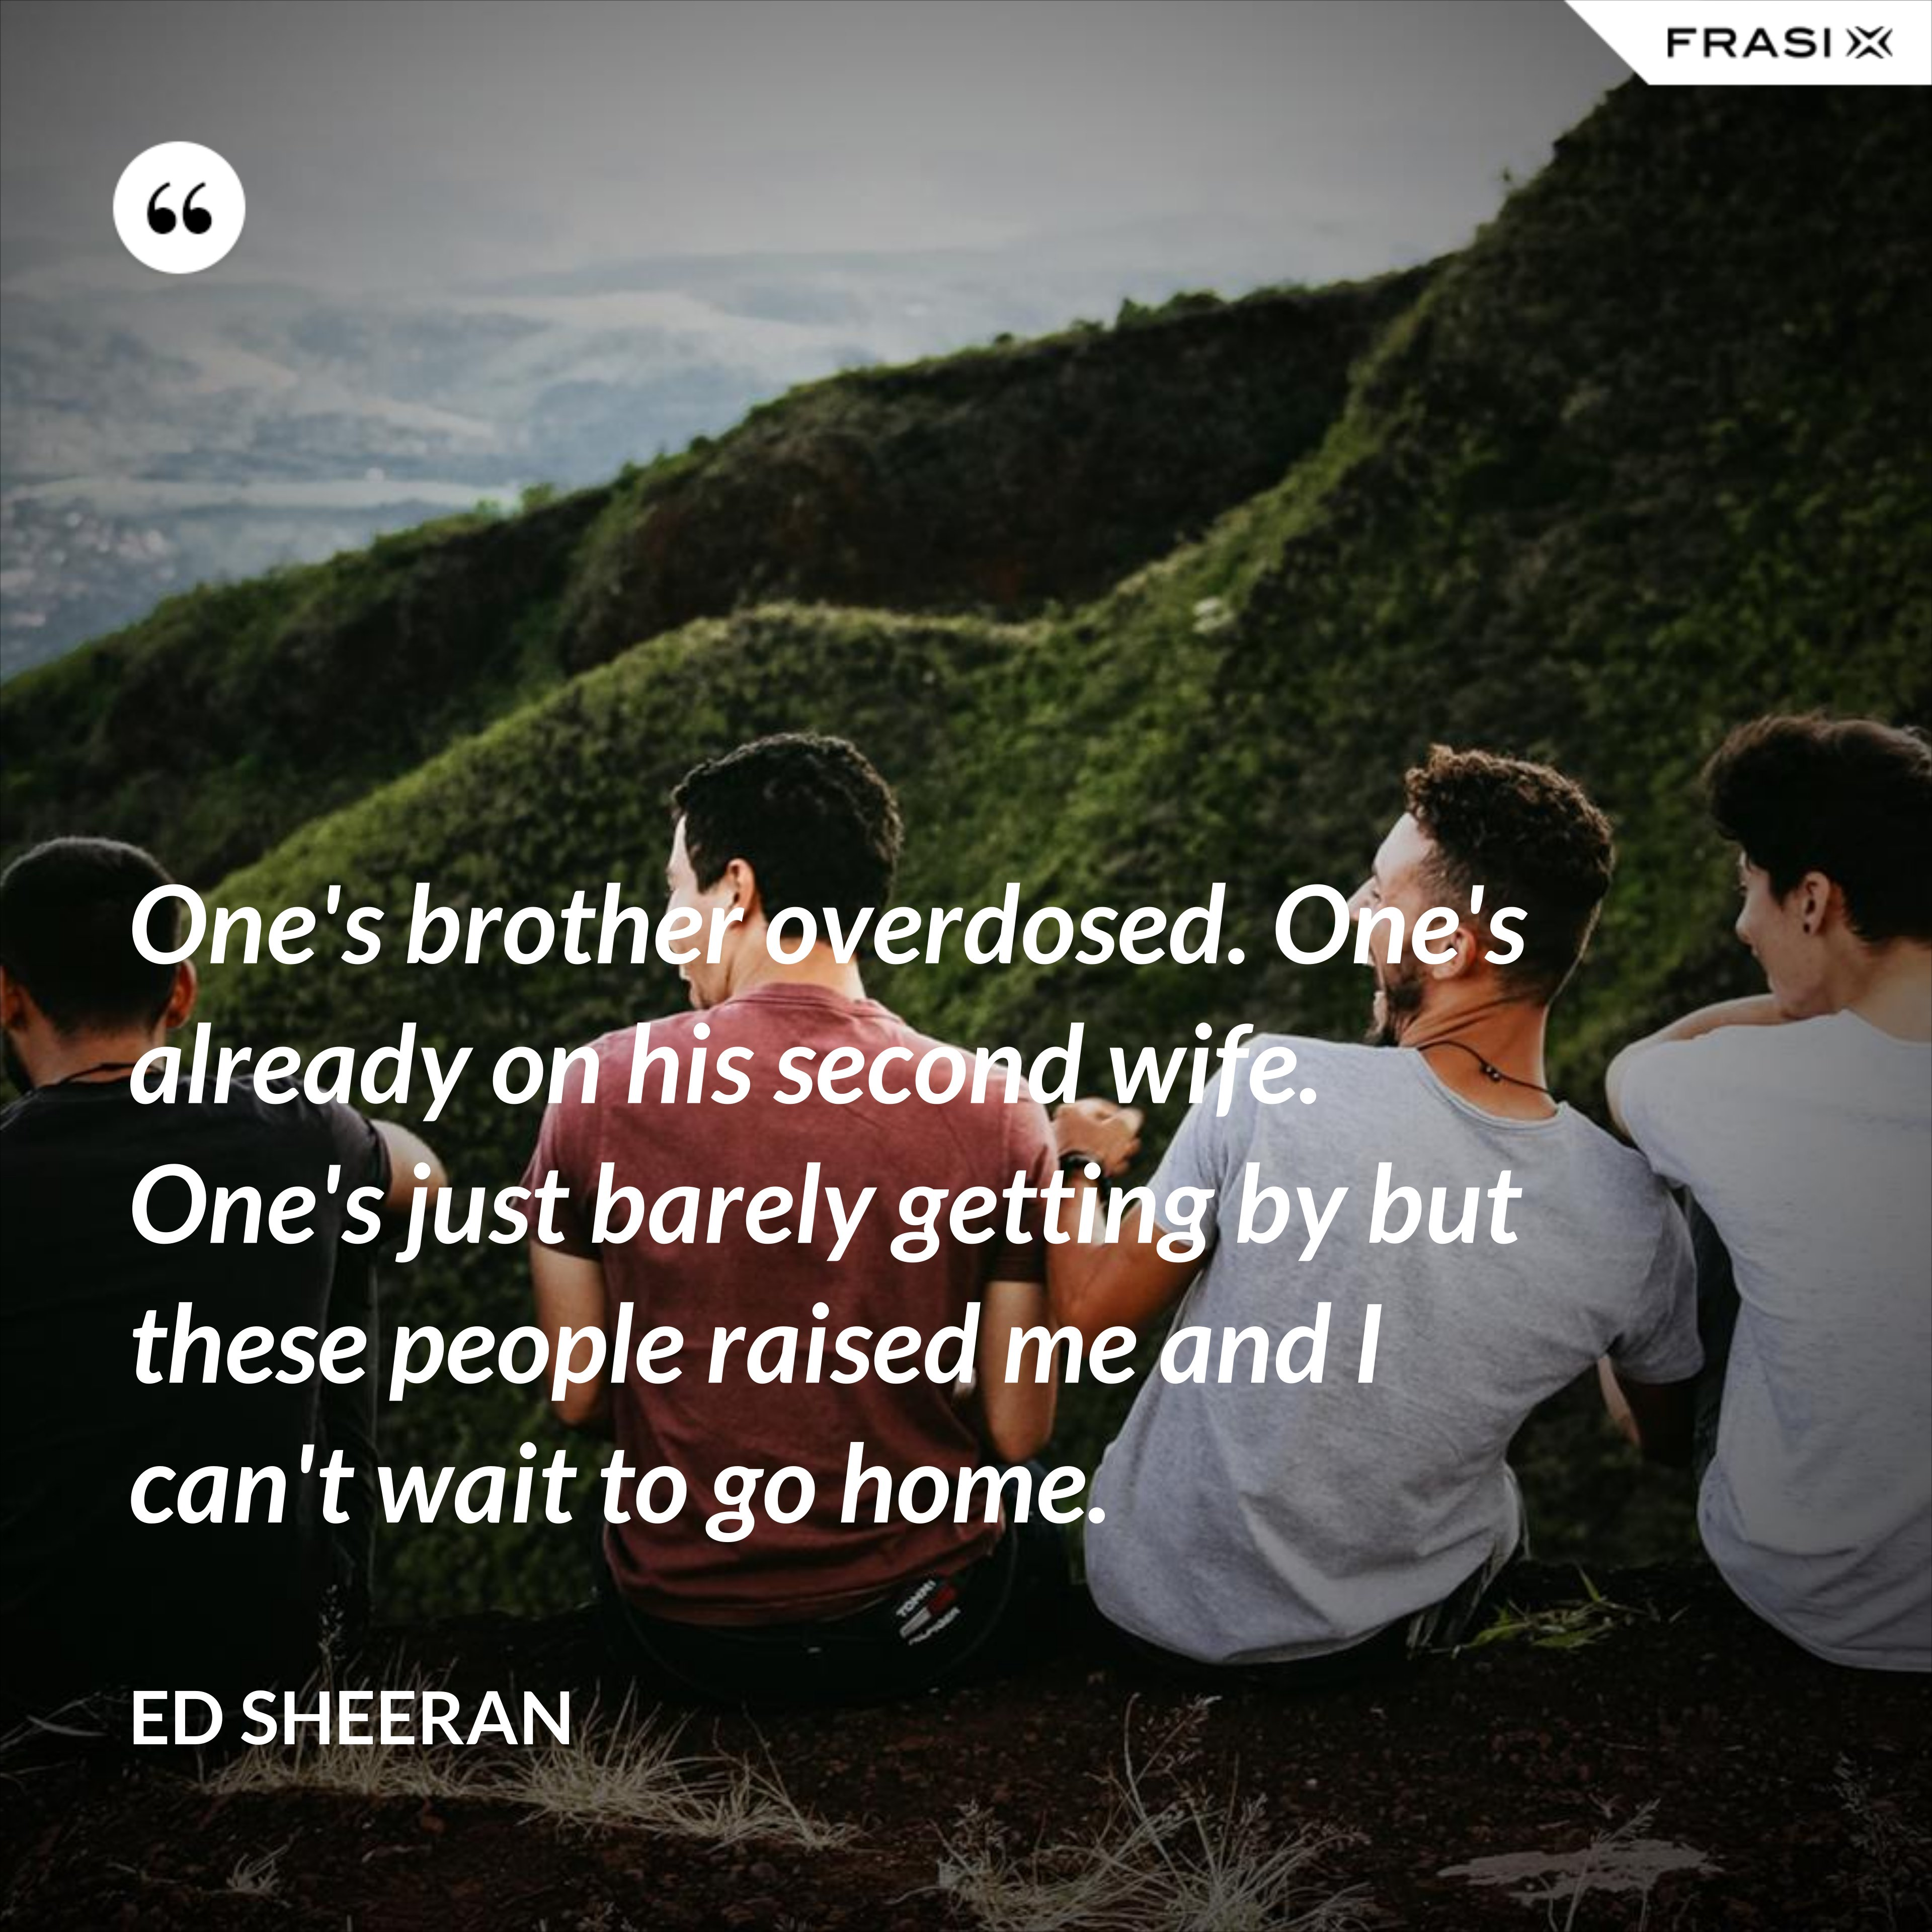 One's brother overdosed. One's already on his second wife. One's just barely getting by but these people raised me and I can't wait to go home. - Ed Sheeran